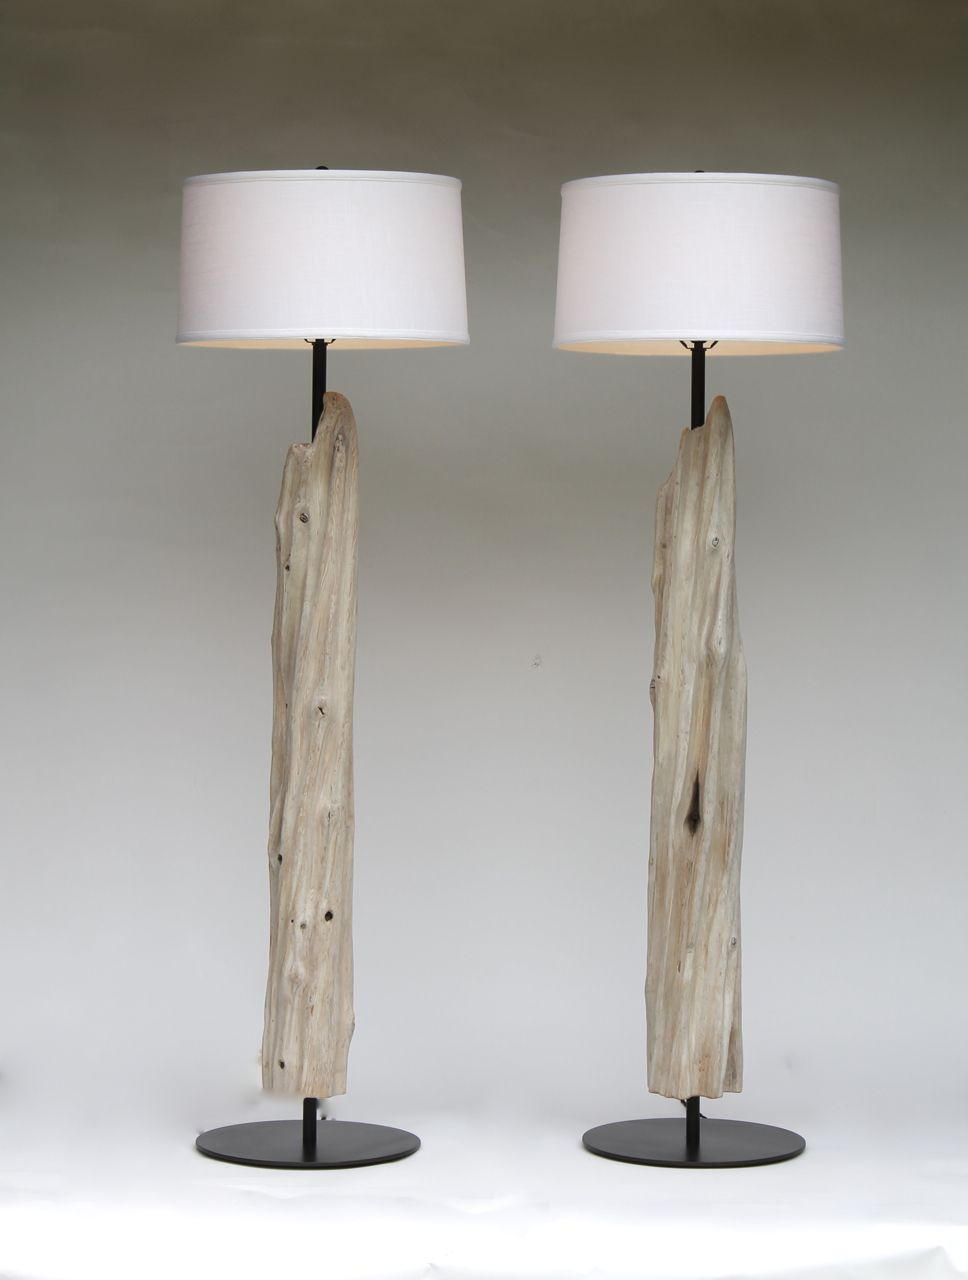 floor lamp decorative lamps ideas driftwood table unique lighting for